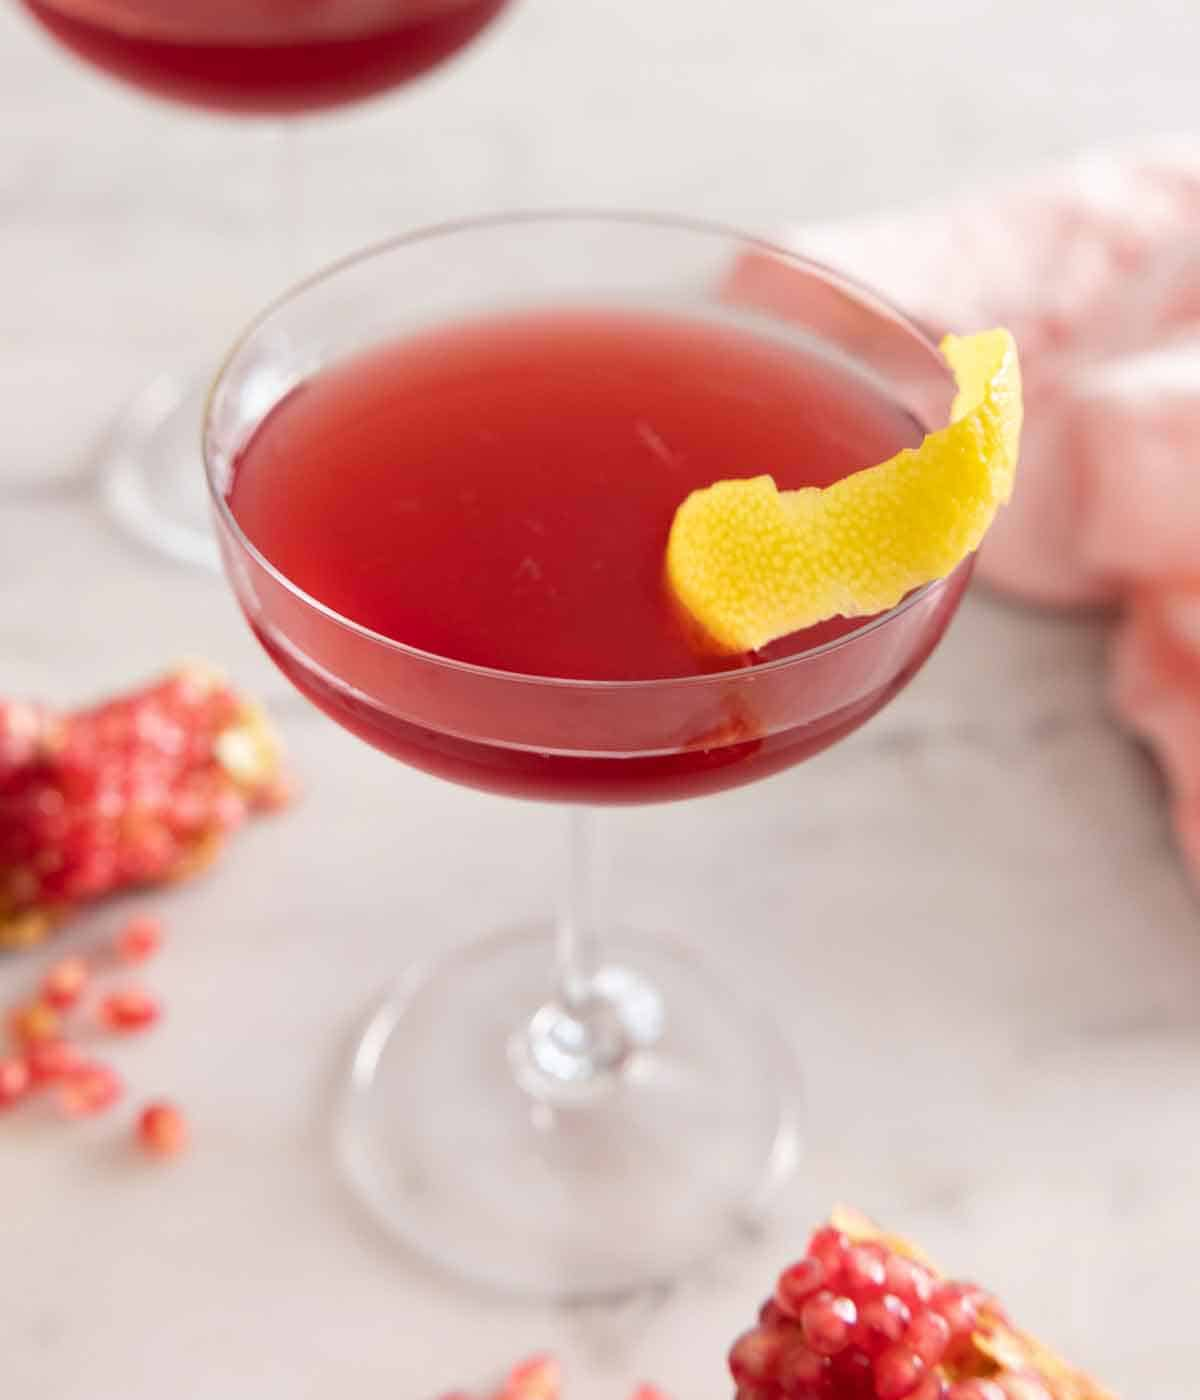 Close up of a glass of pomegranate martini with a lemon peel garnish.